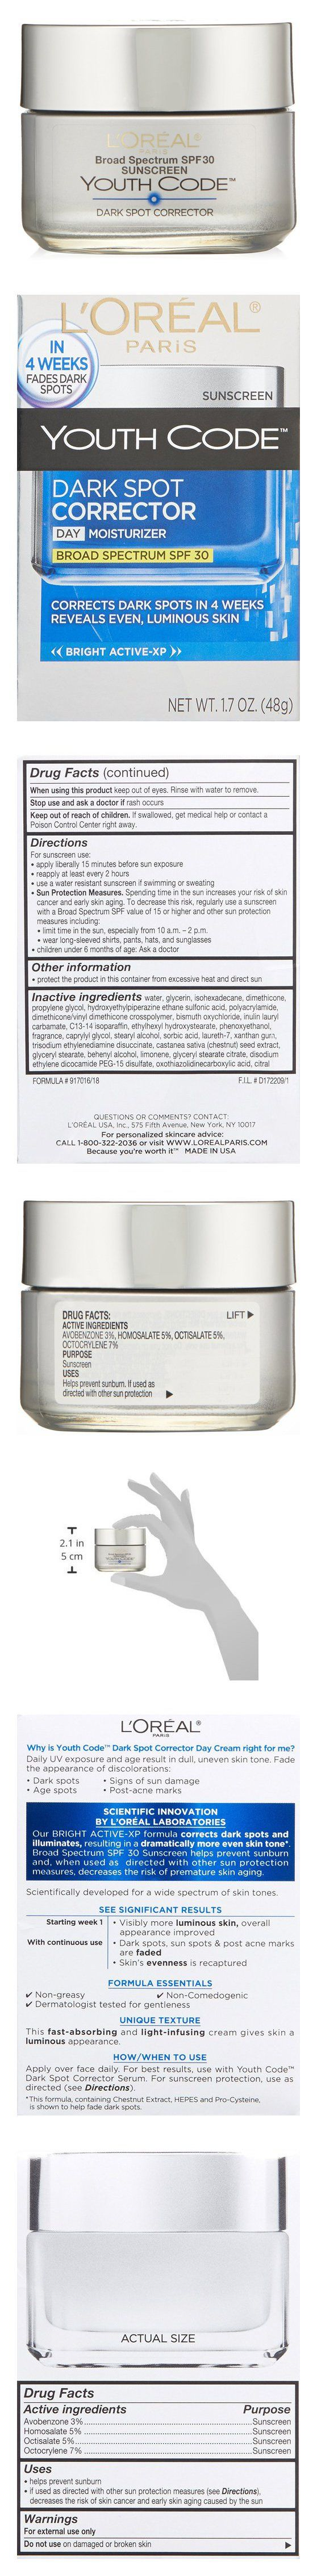 L'Oreal Paris Youth Code Dark Spot Corrector Facial Day Cream SPF 30 #beauty #lorealparis